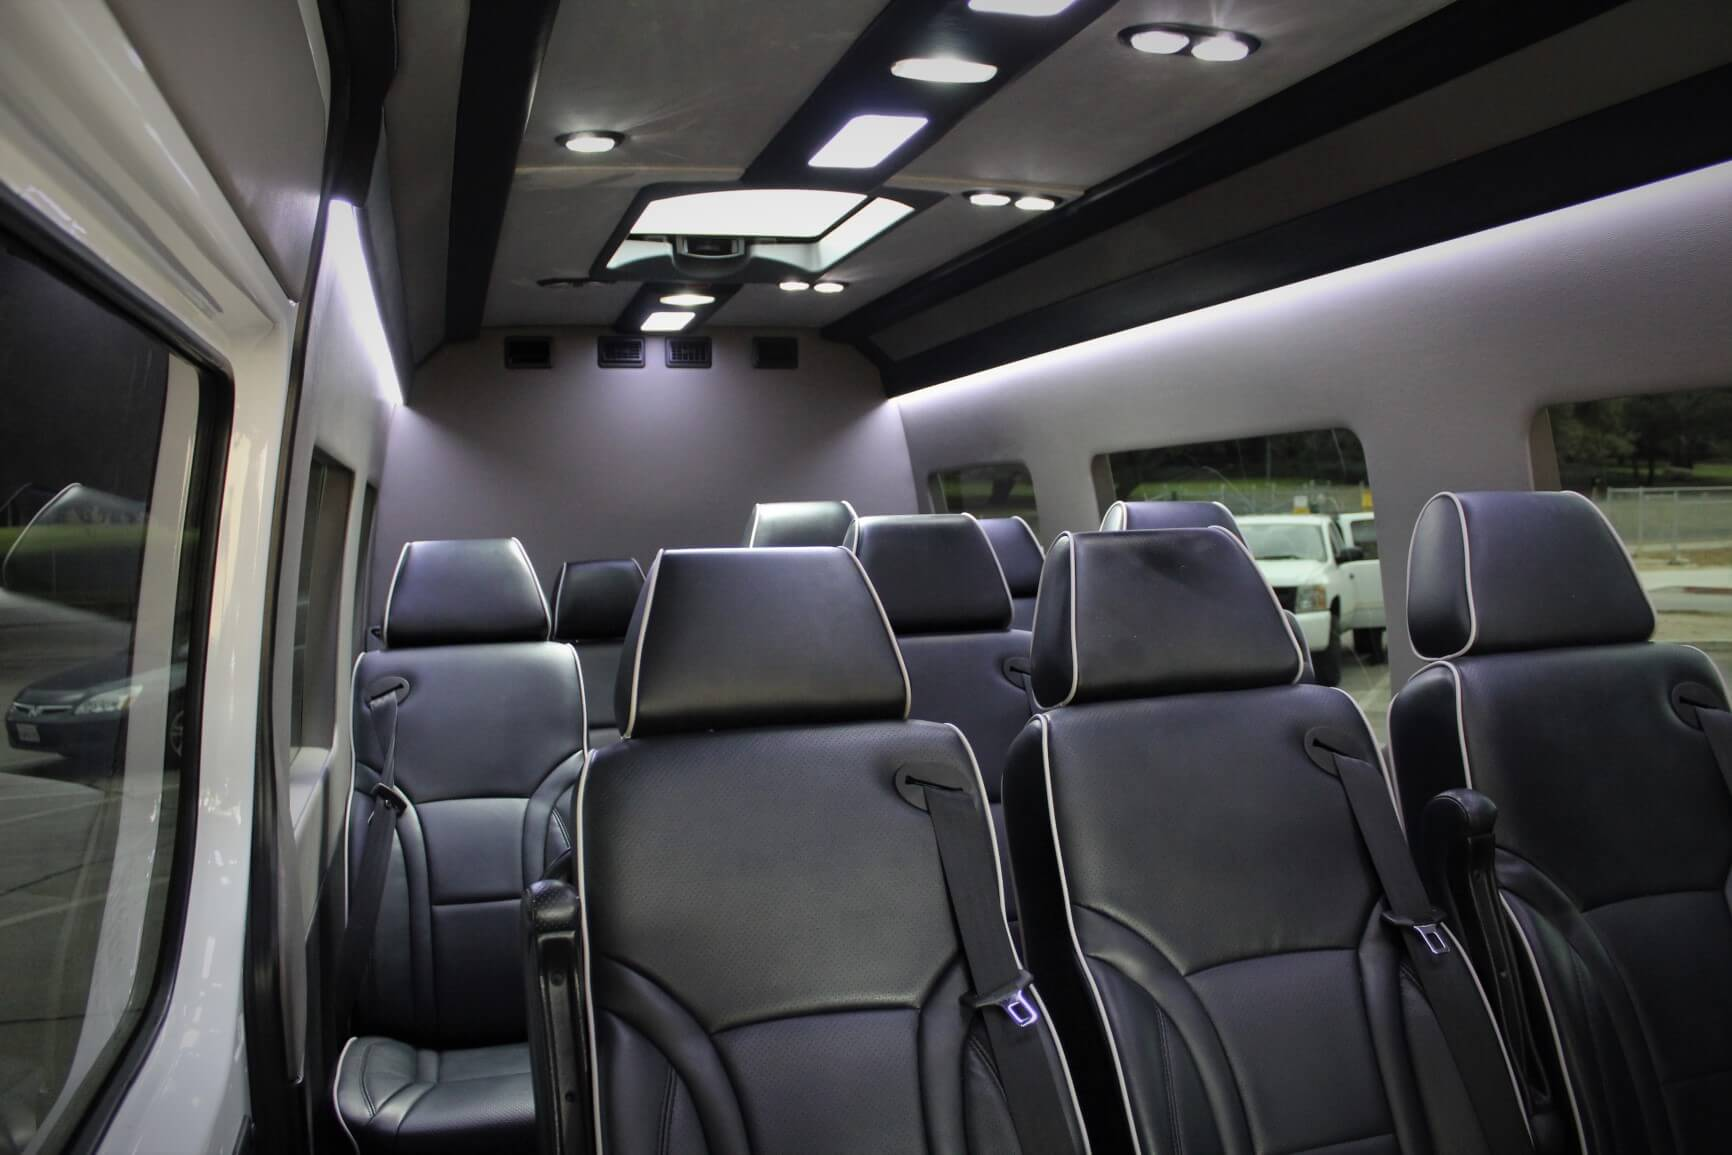 Mercedes Sprinter Executive Shuttle Van - Luxury Chauffeur Service in Los Angeles